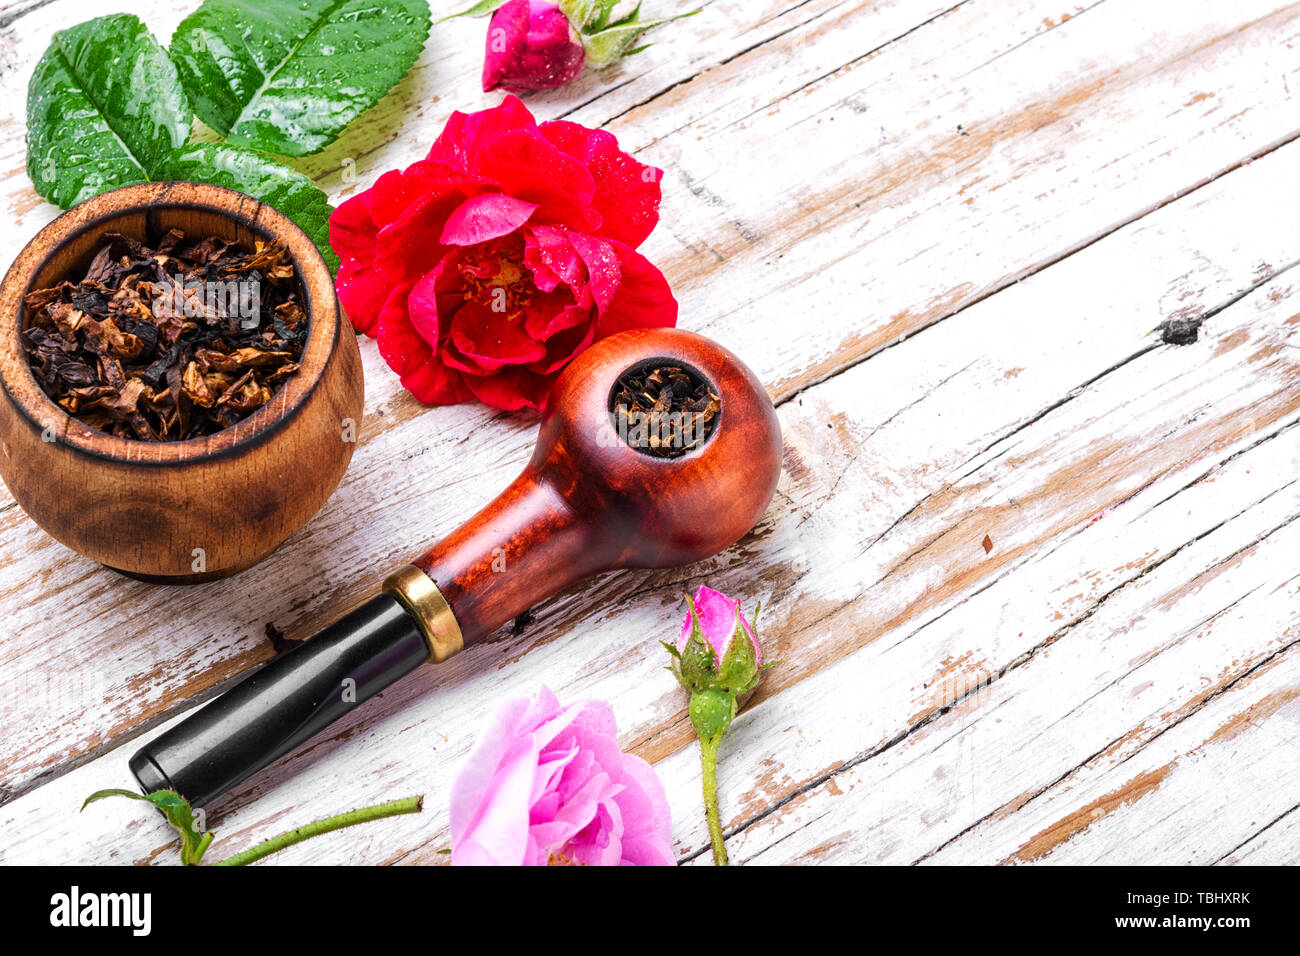 Tobacco pipe and smoking tobacco with rose flavor Refined